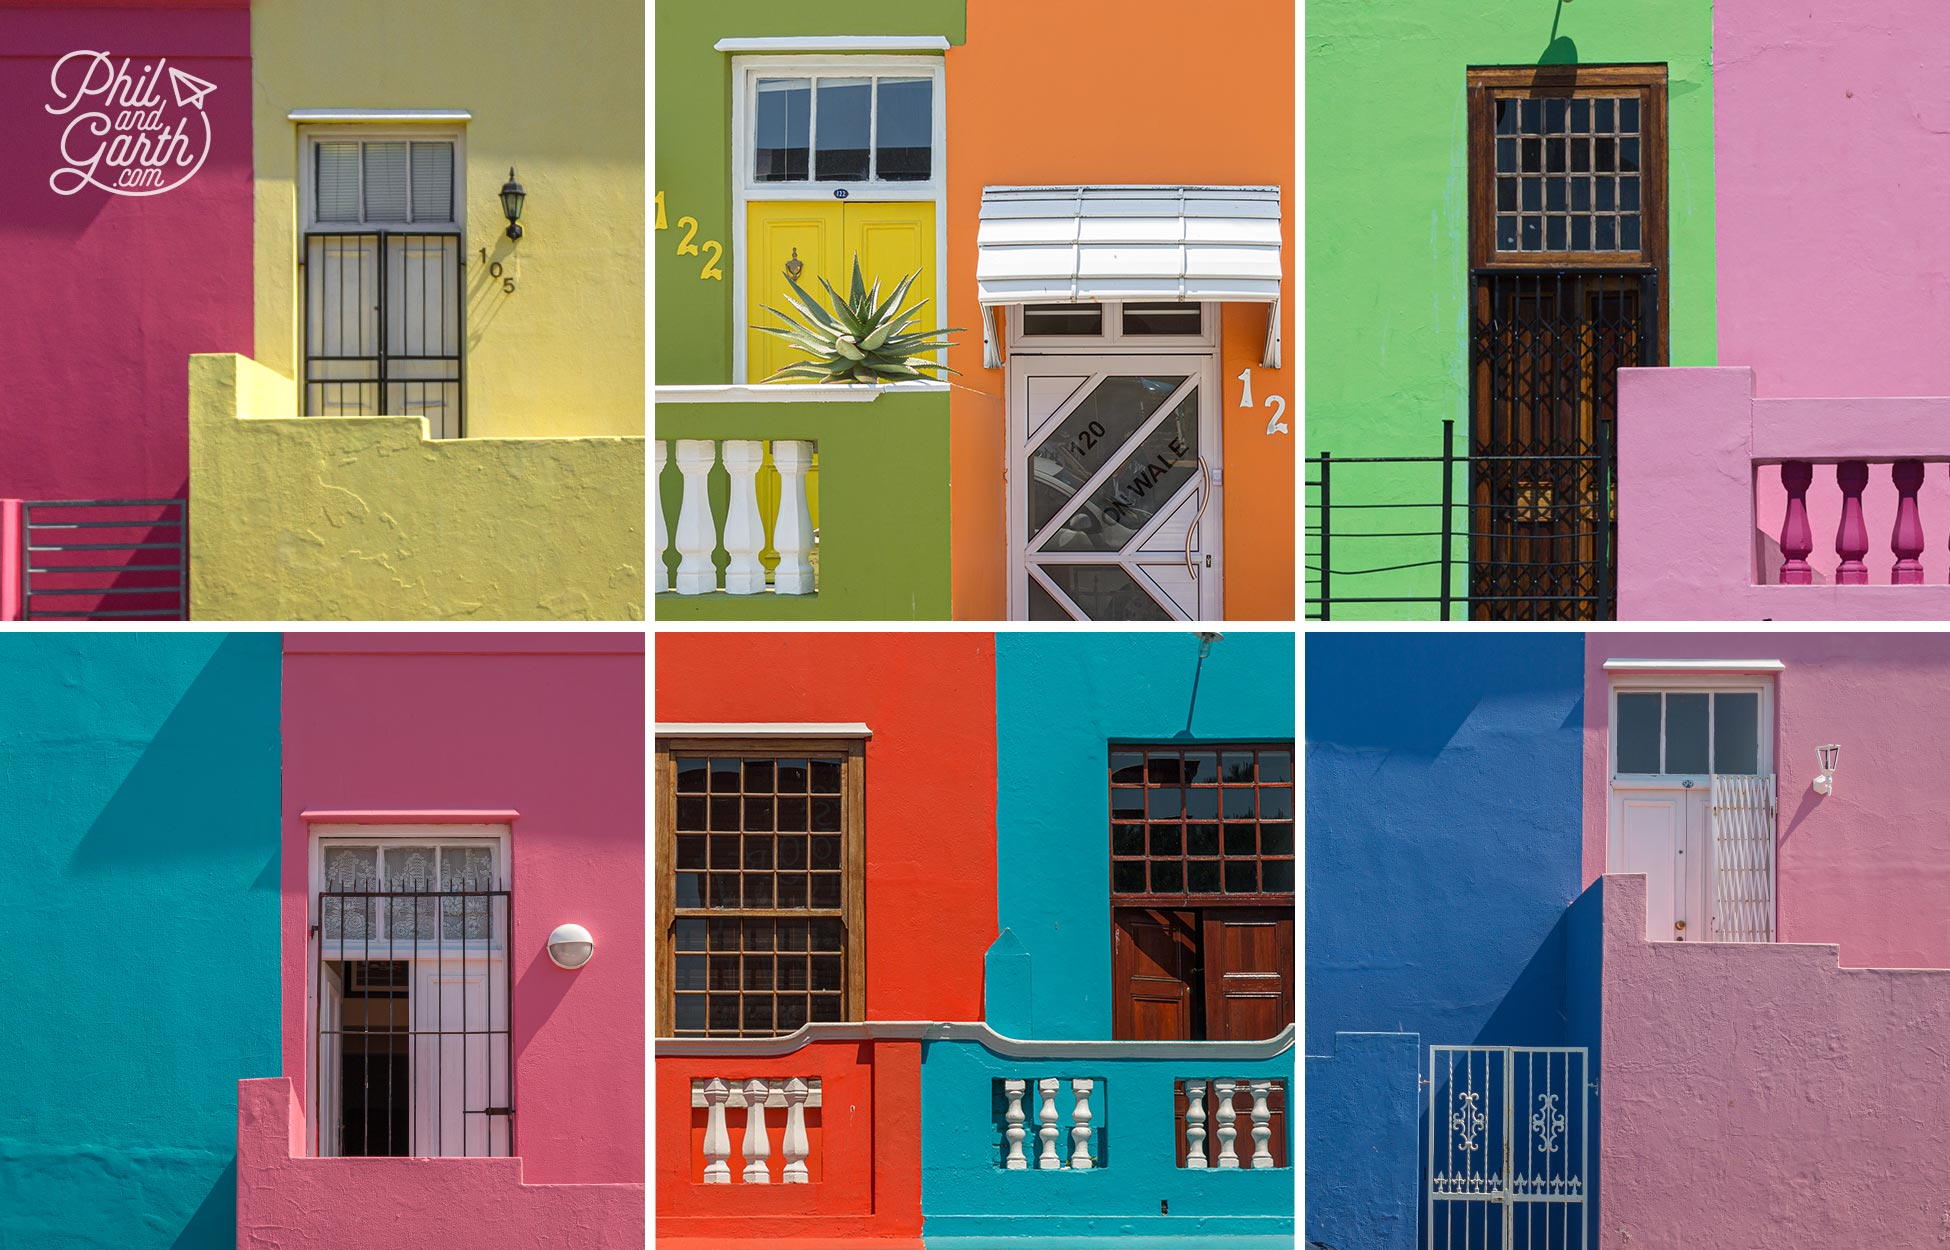 Bo-Kaap has to be the most Instagrammable spot of Cape Town